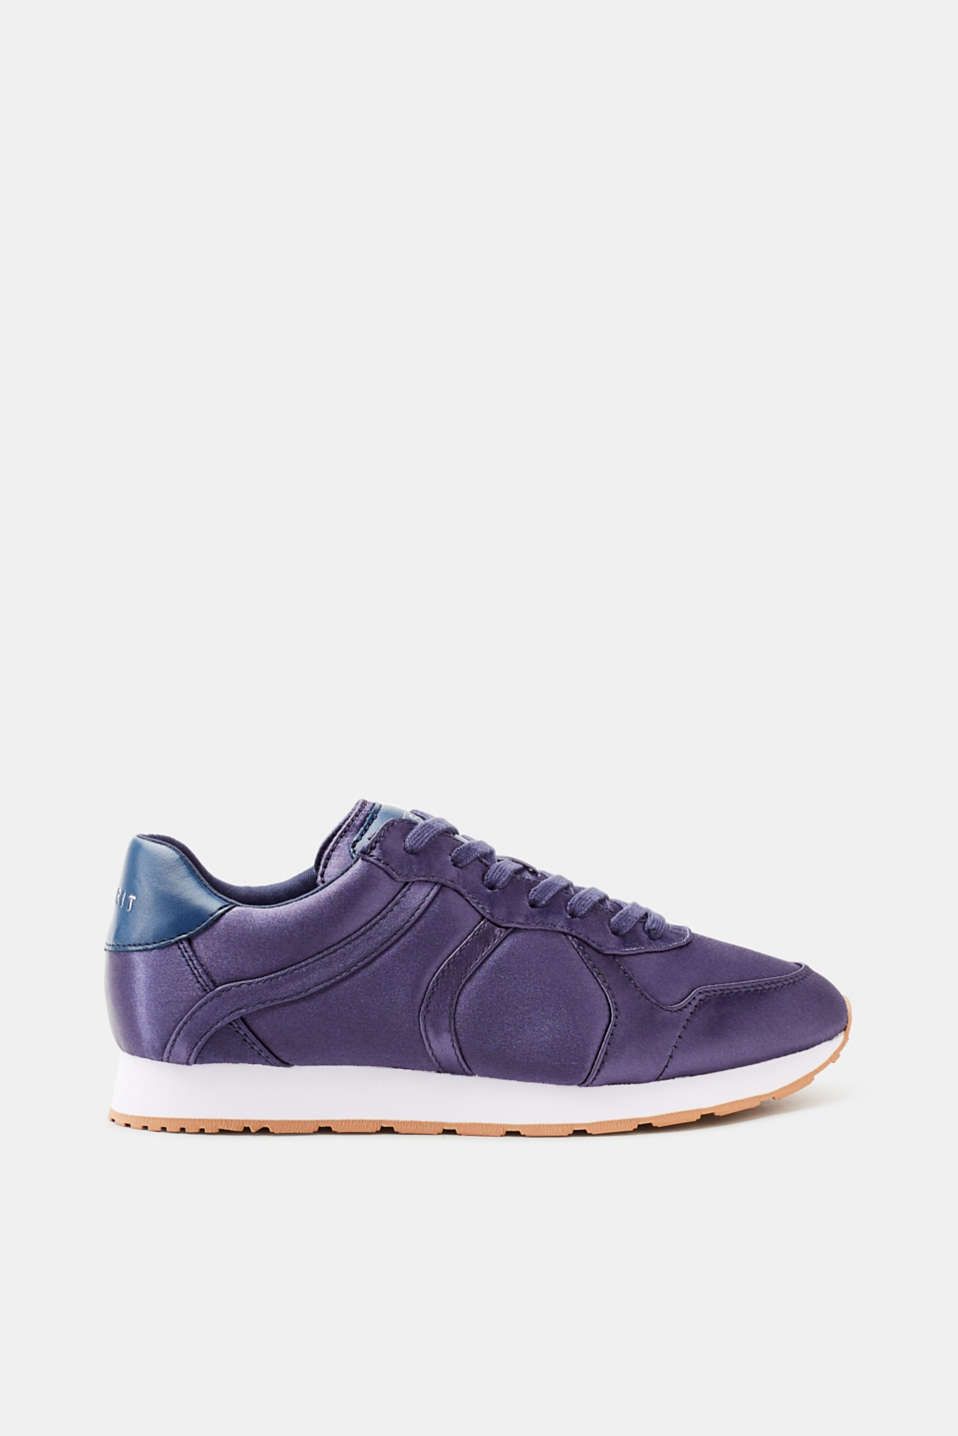 Esprit - Lace-up trainers with a fine shimmer